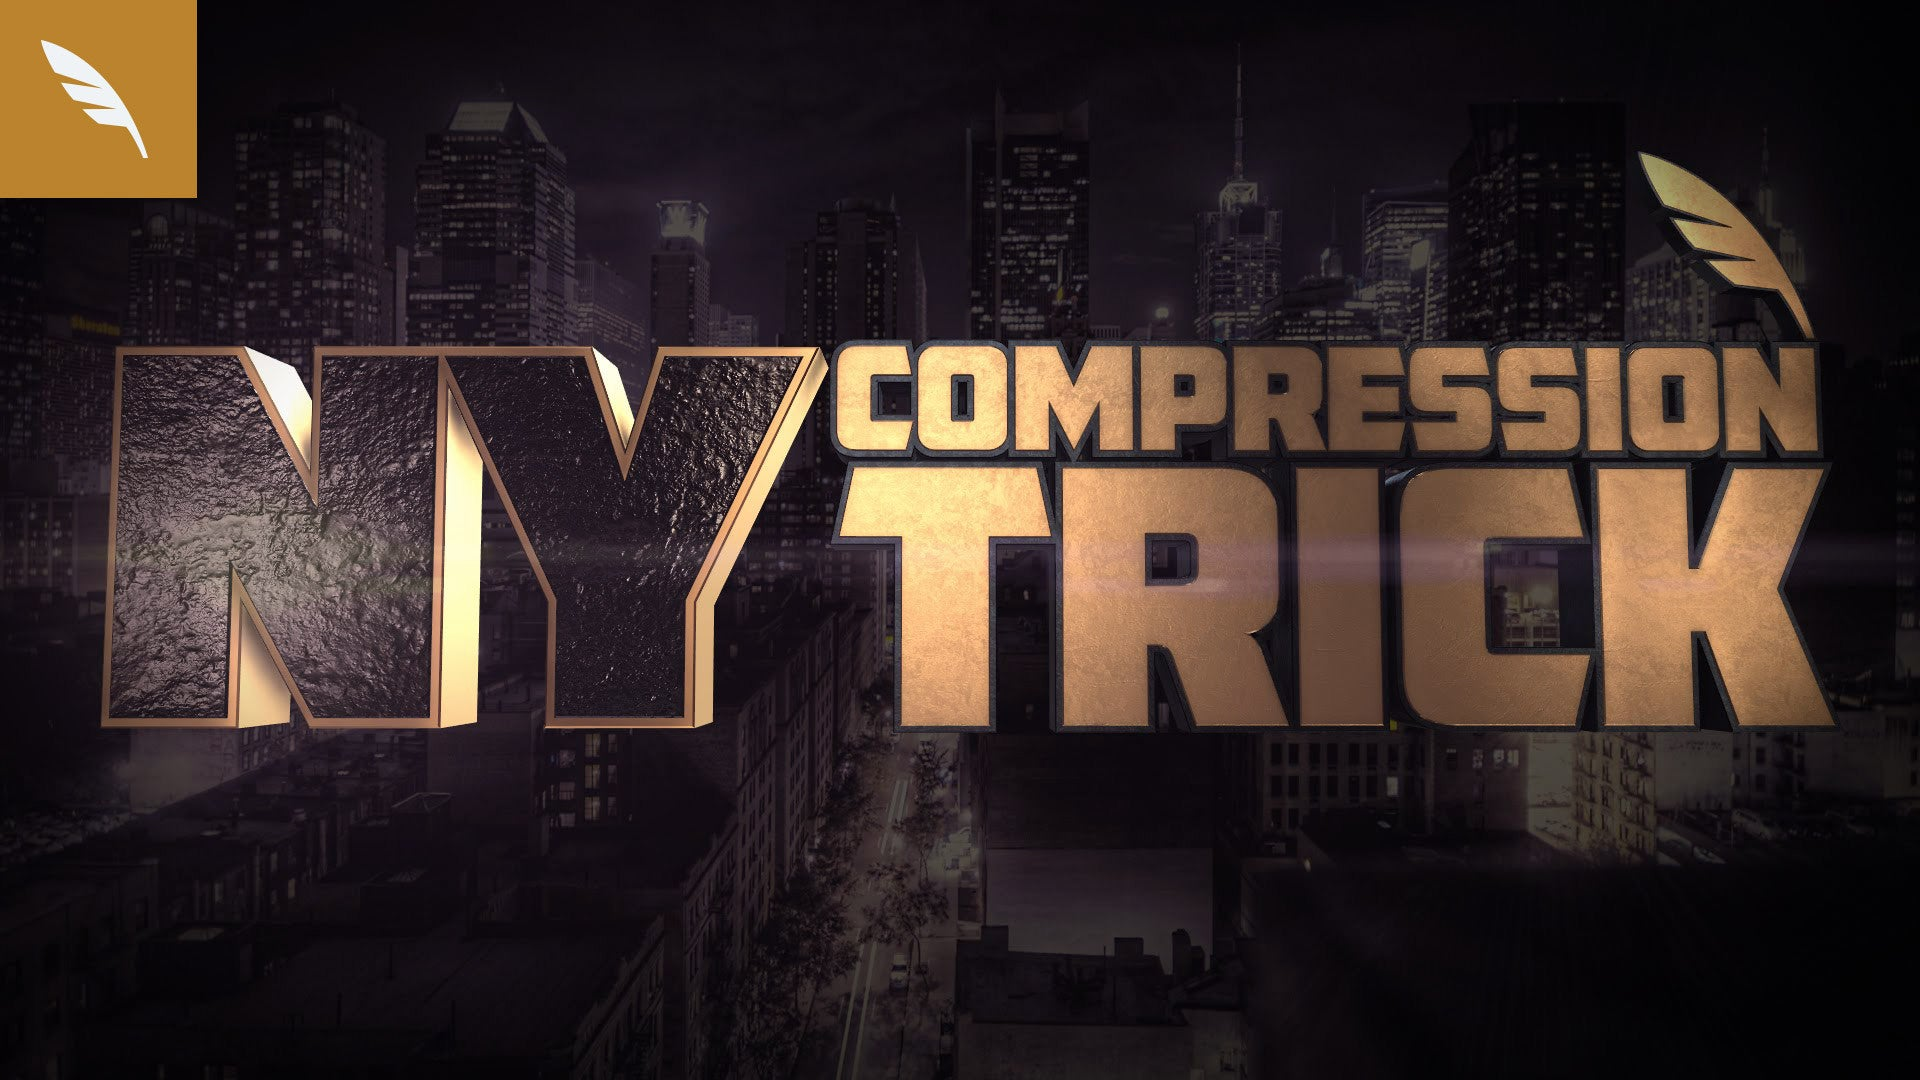 The NY Compression Trick